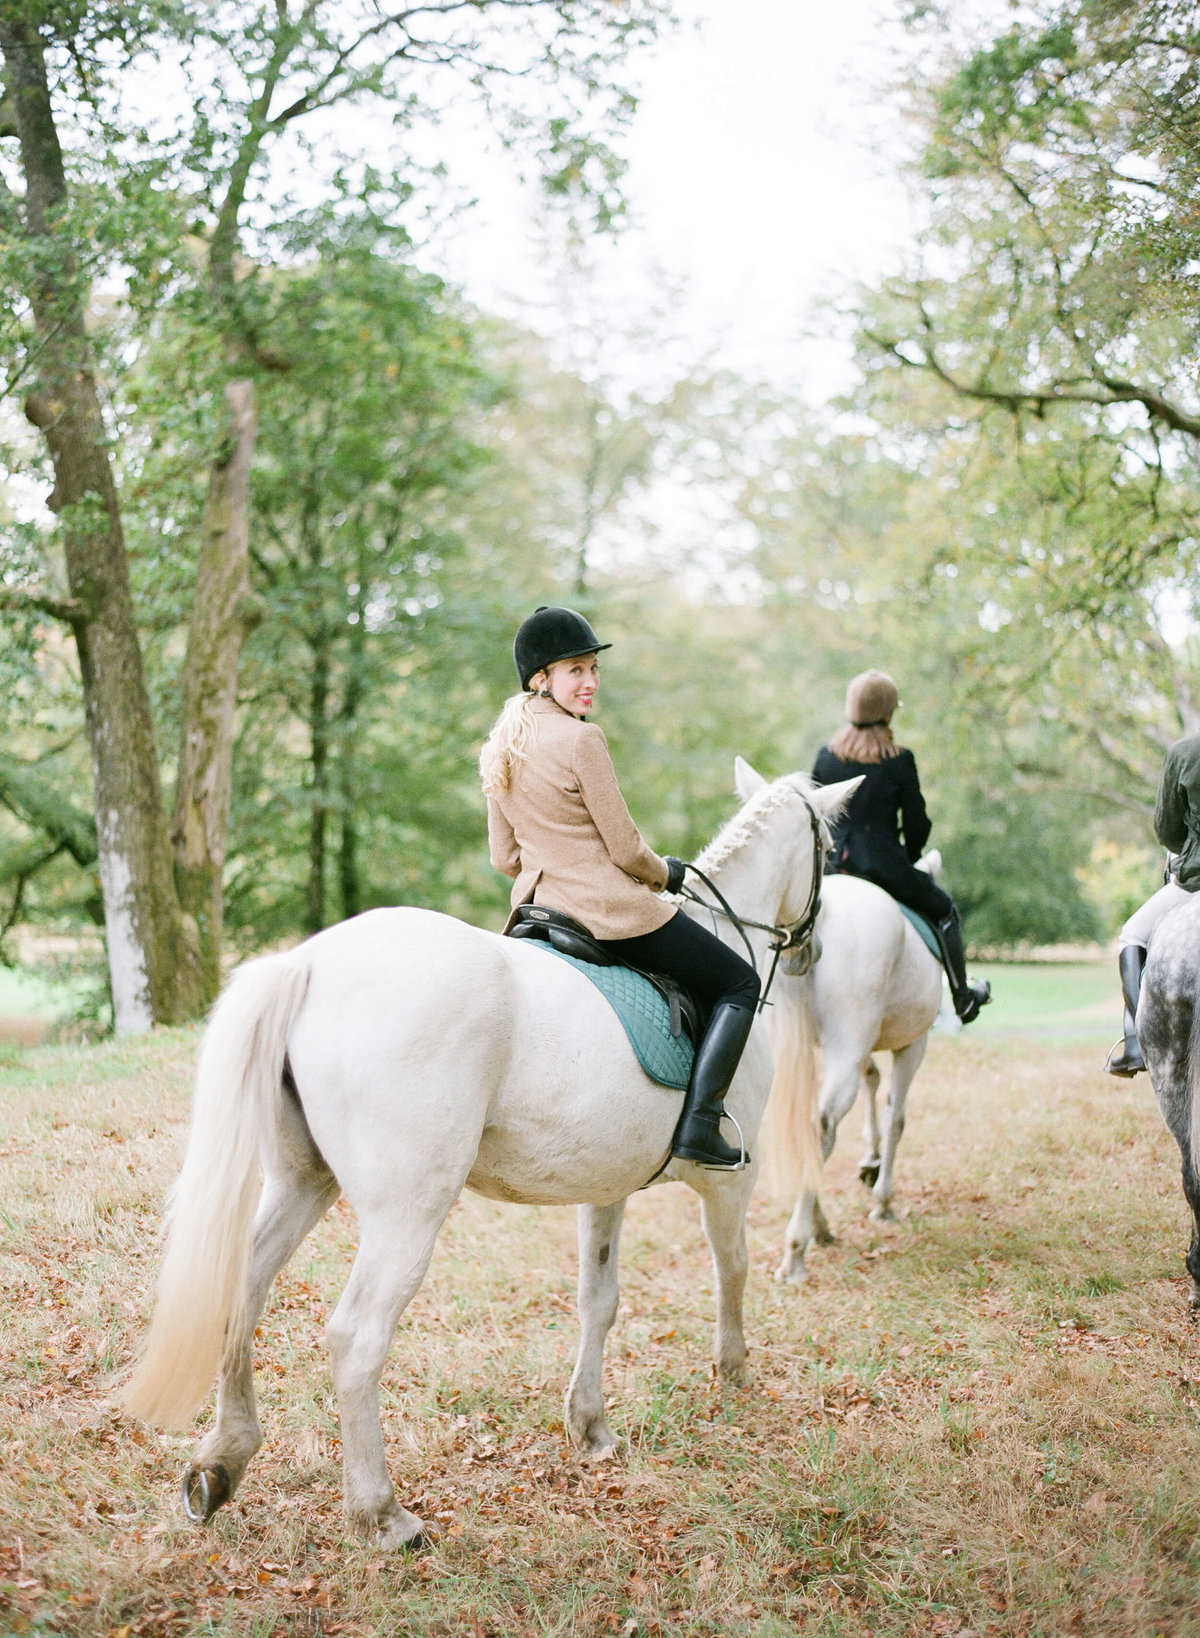 87-KTMerry-destination-weddings-english-riding-Ballyfin-Ireland